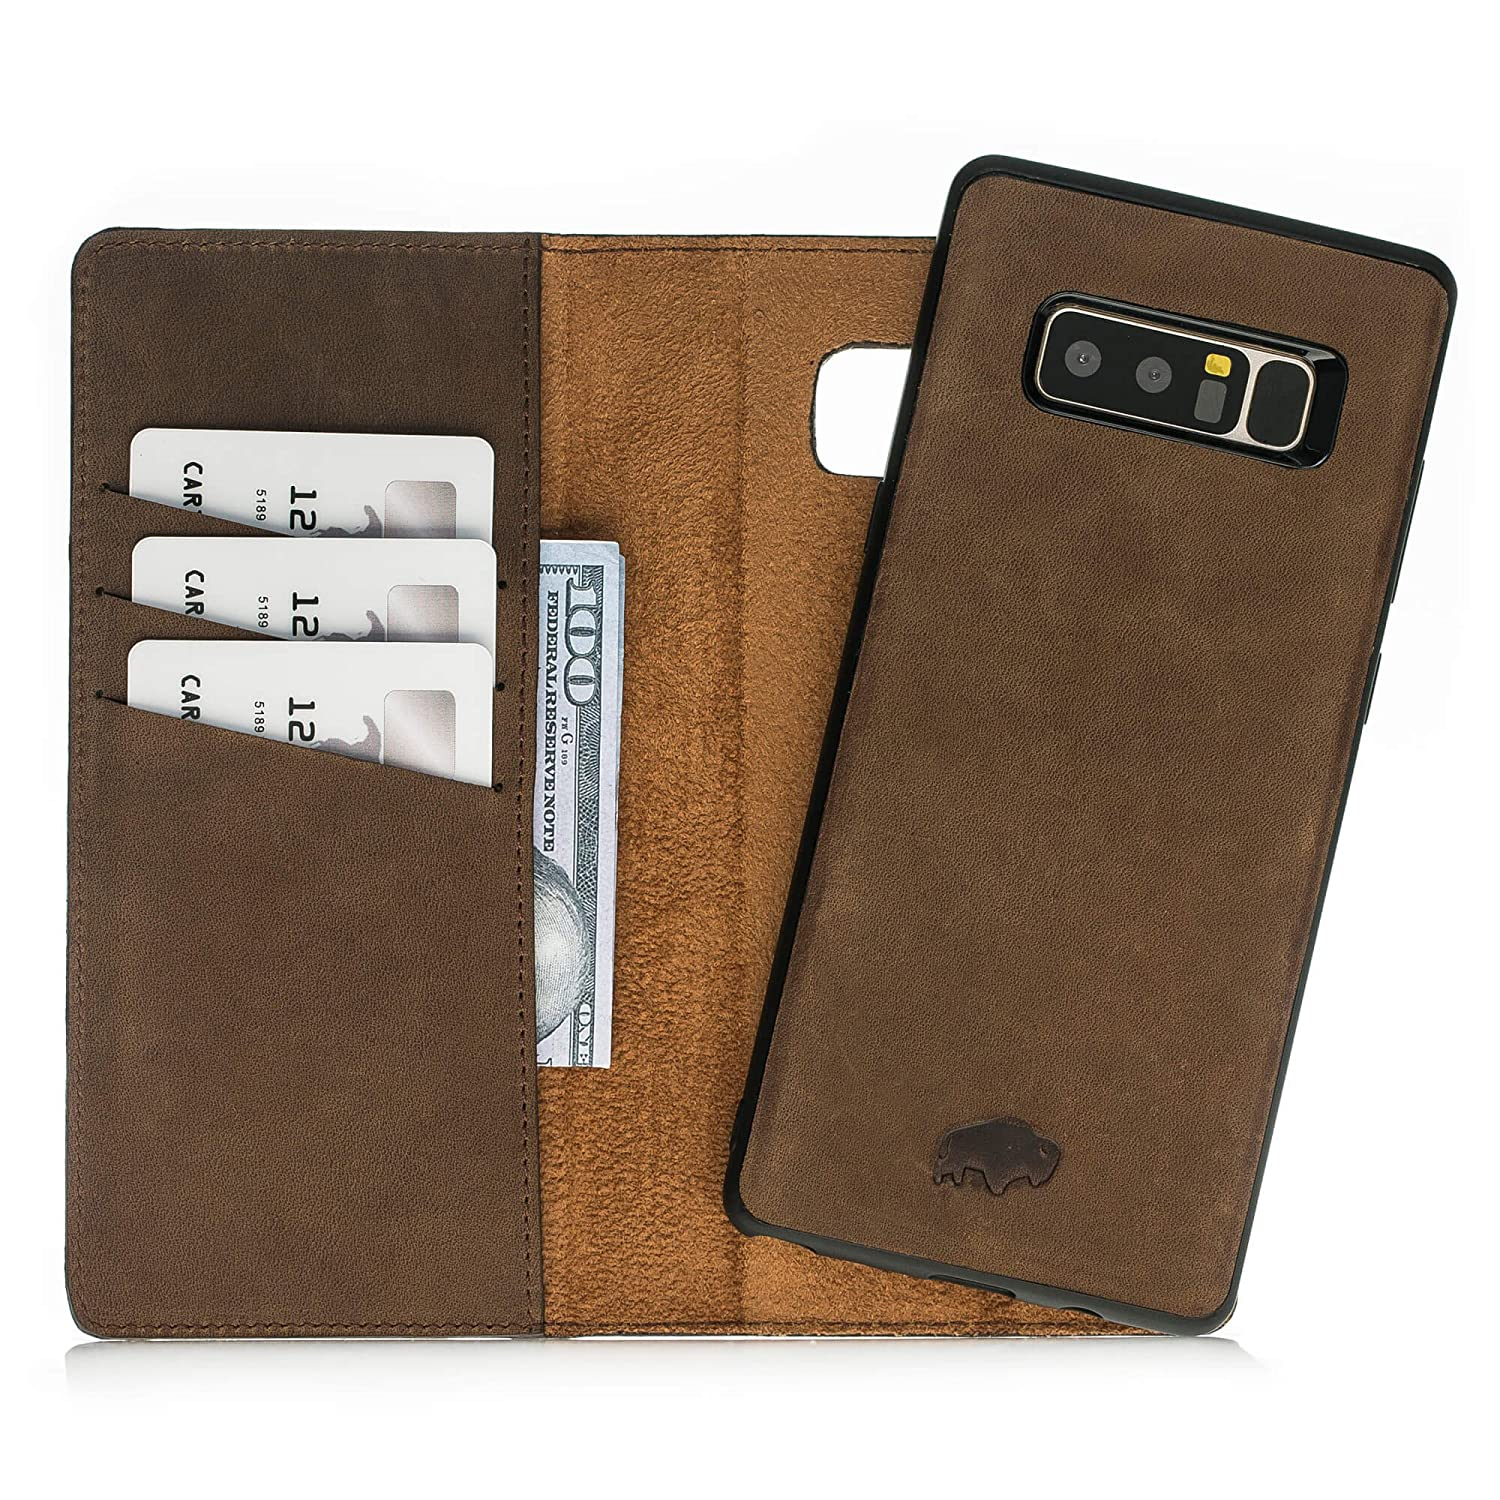 sale retailer 550cb bc294 Samsung Note 8 Leather Case by Burkley, Leather Wallet Folio Case ...